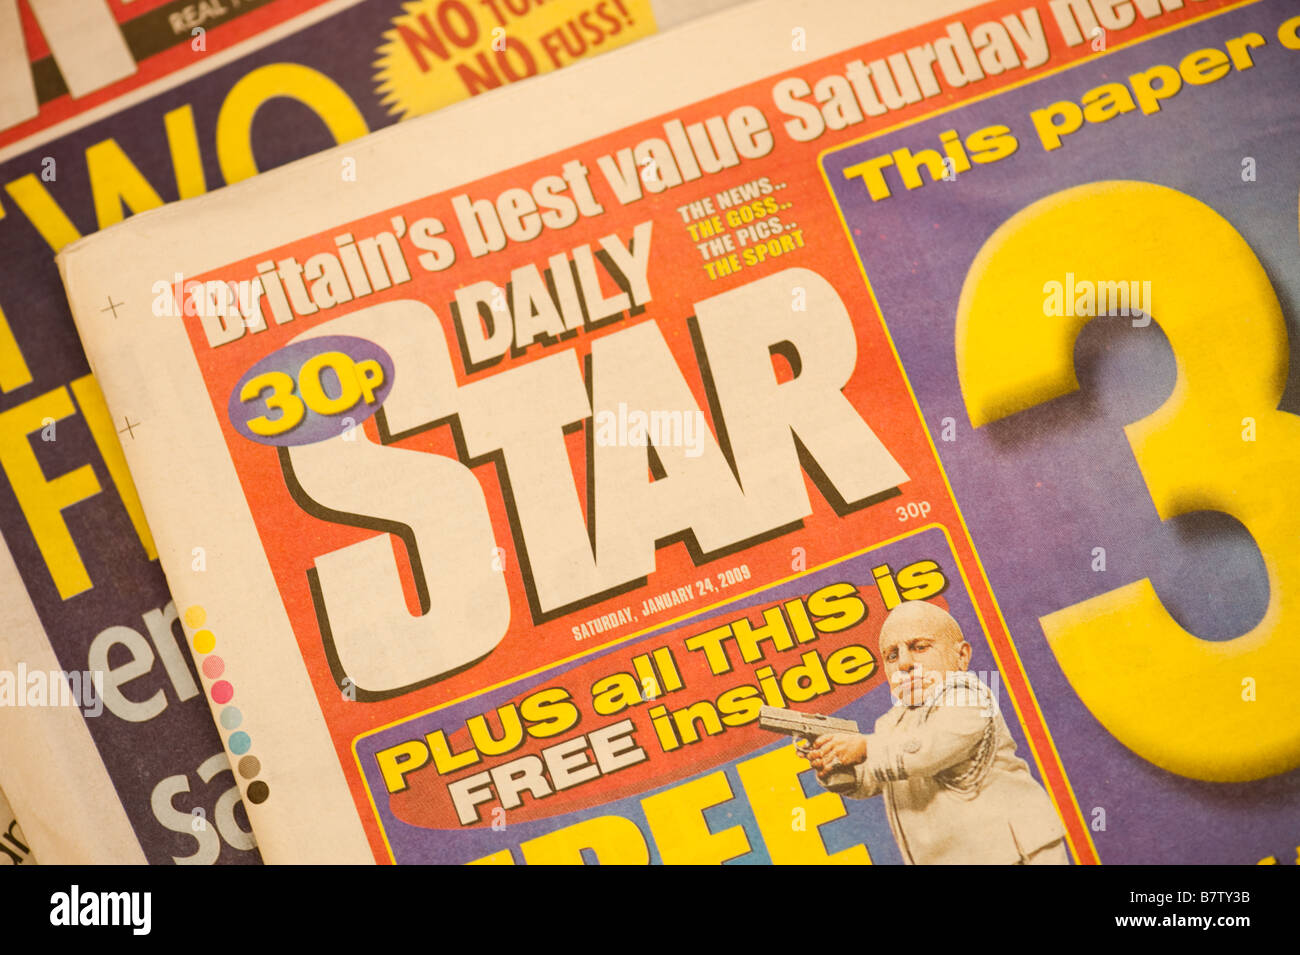 UK newspapers the Daily Star Stock Photo